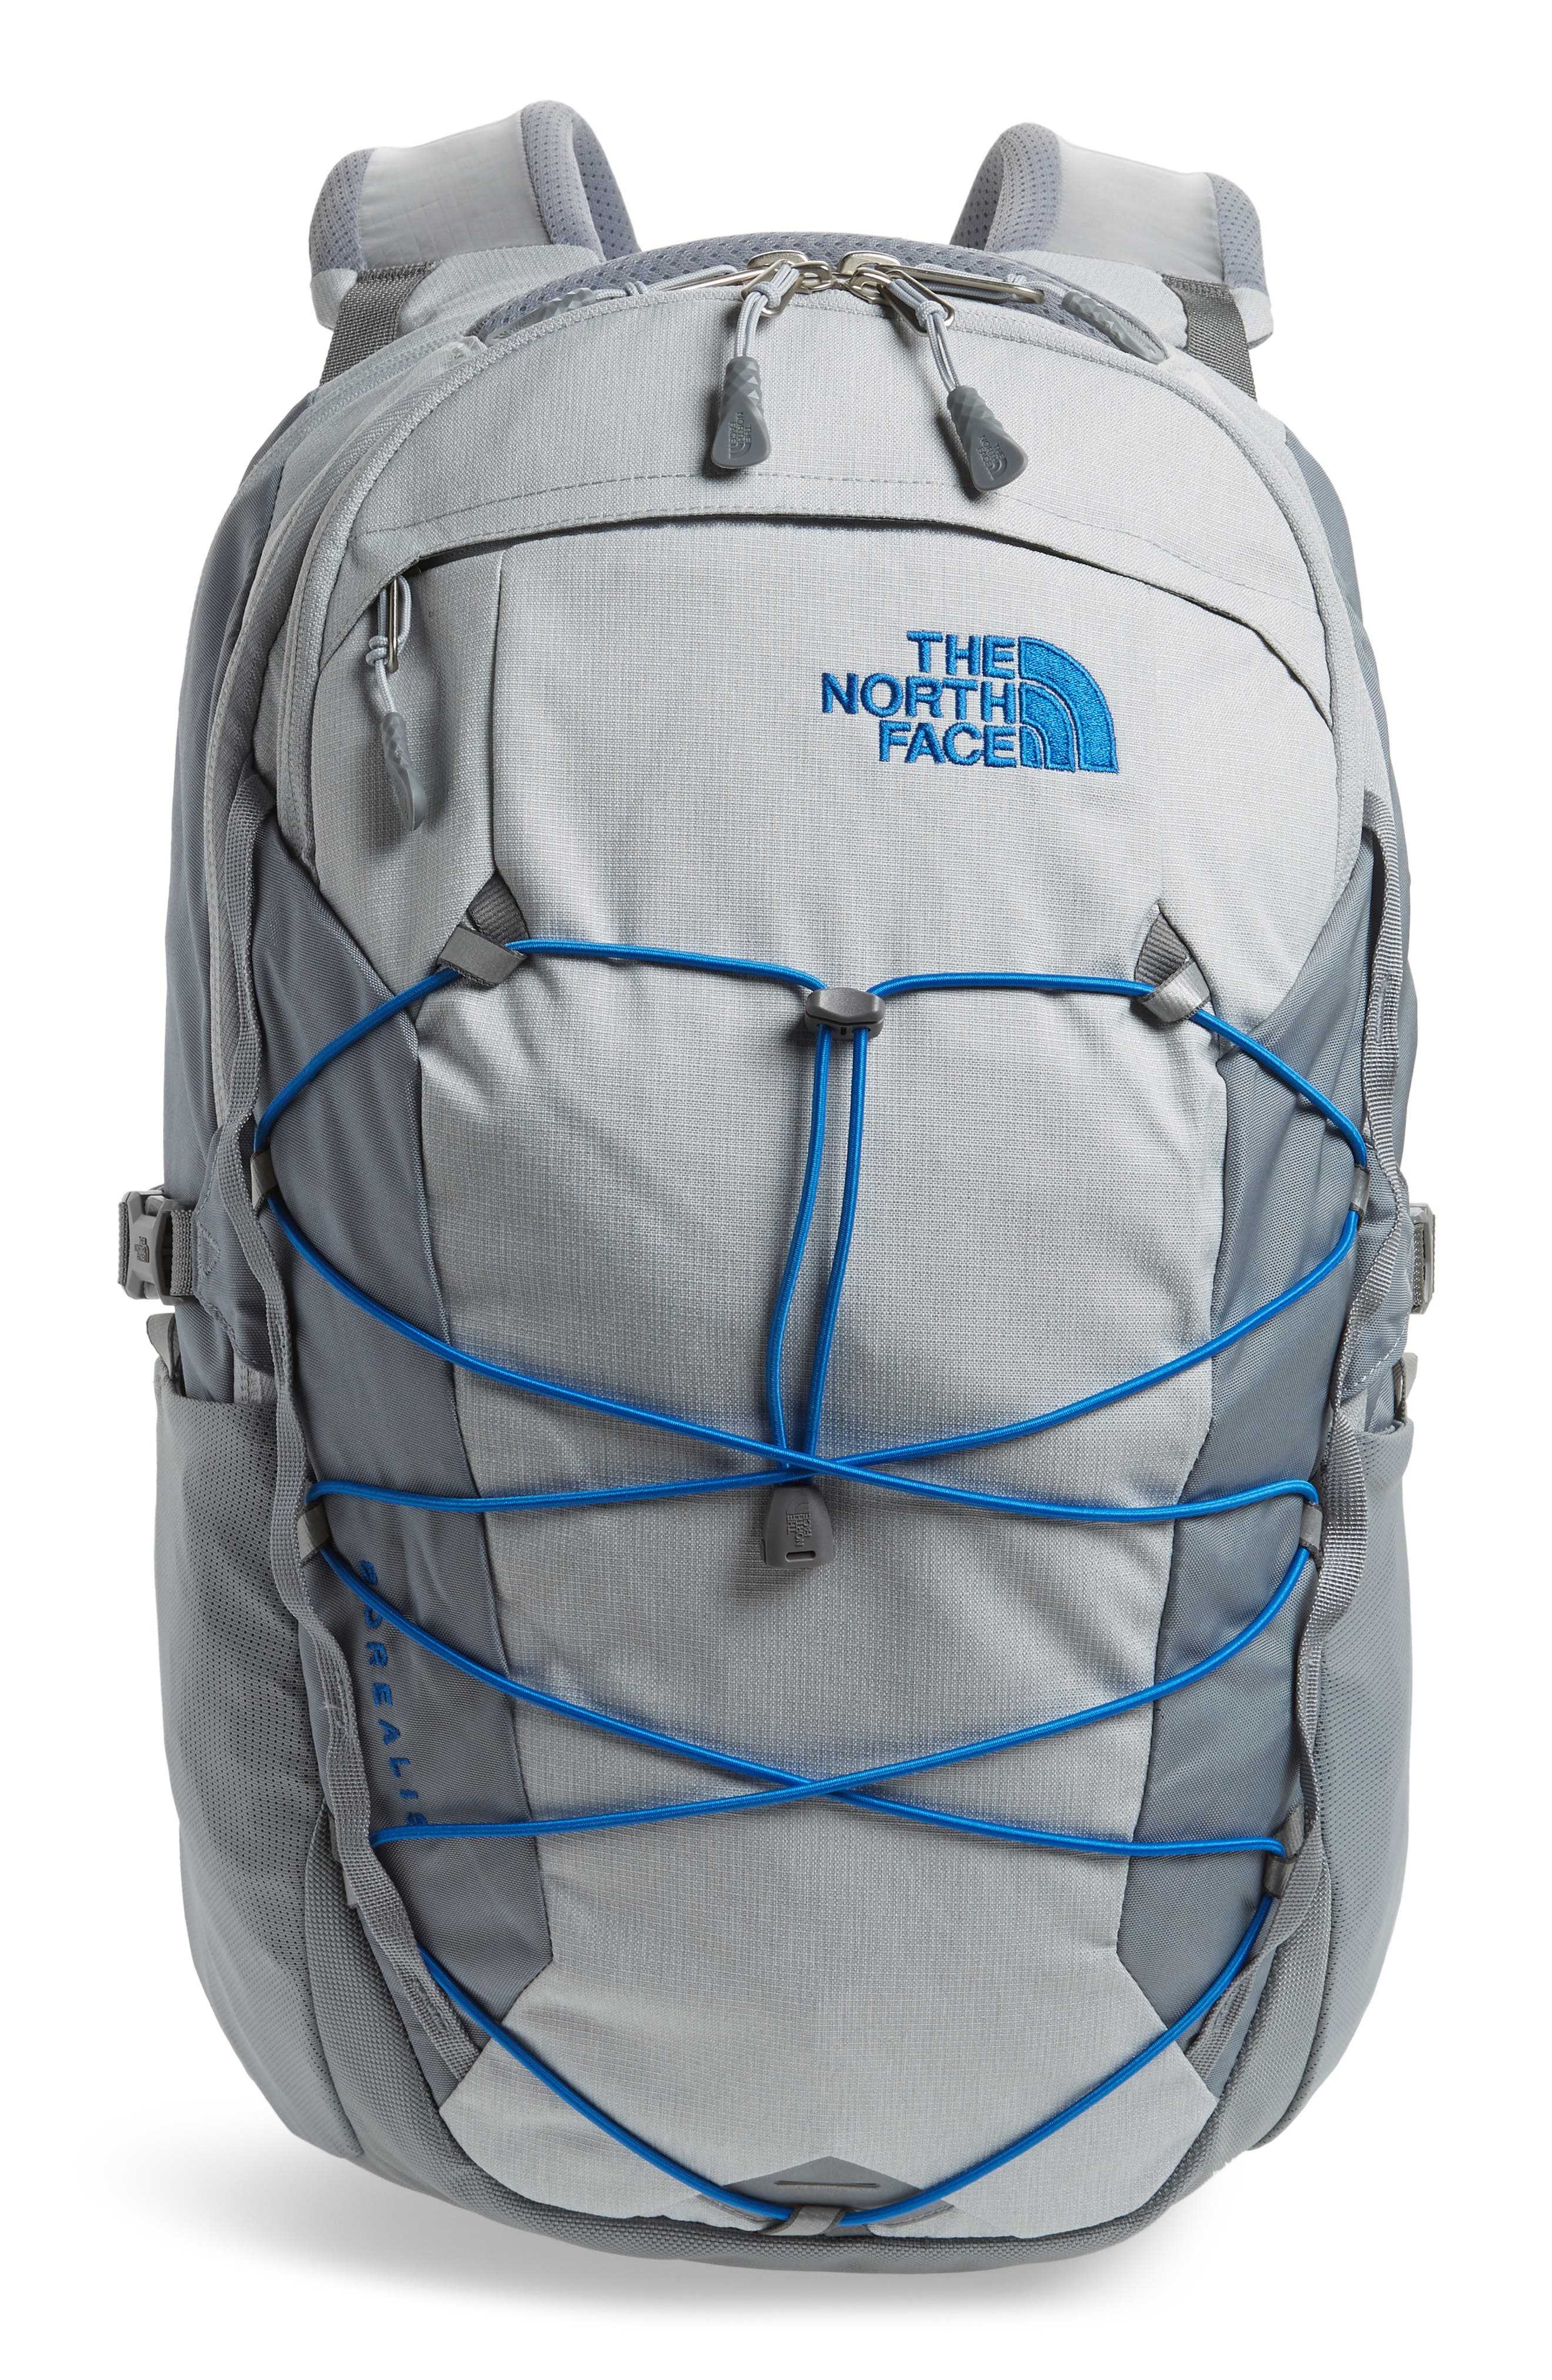 67baf929defc The North Face Womens Vault Backpack Review- Fenix Toulouse Handball